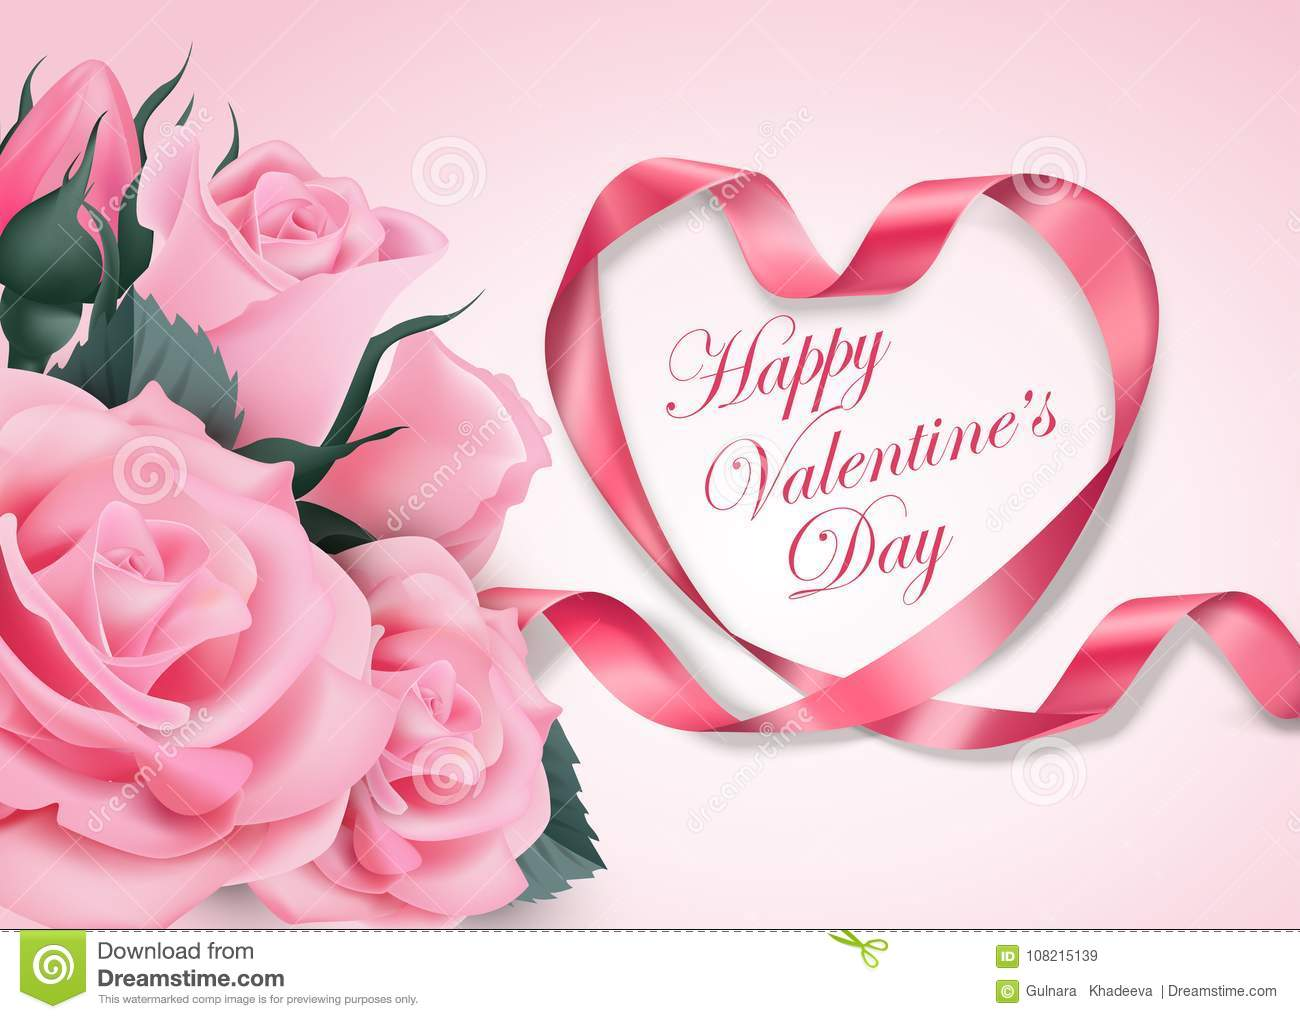 Happy Valentines Day Pink Ribbon Heart With Delicate Pink